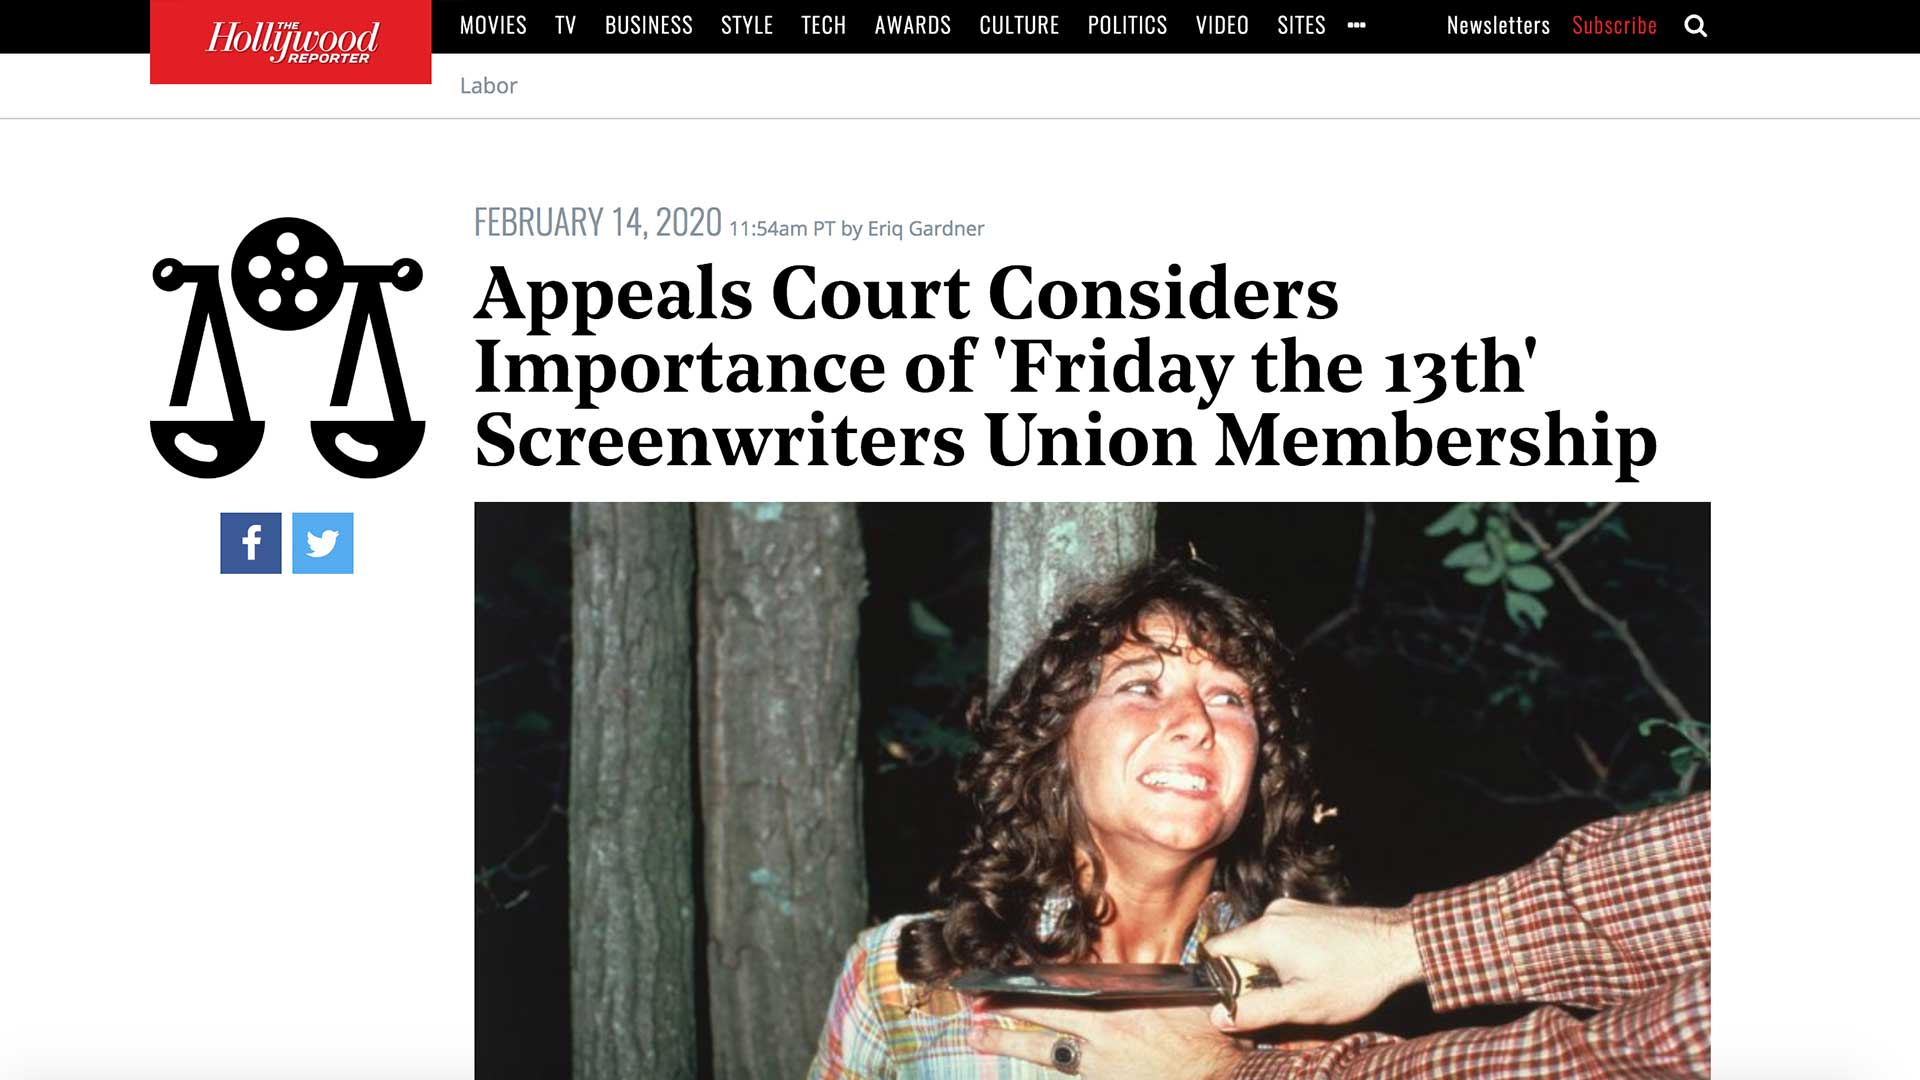 Fairness Rocks News Appeals Court Considers Importance of 'Friday the 13th' Screenwriters Union Membership